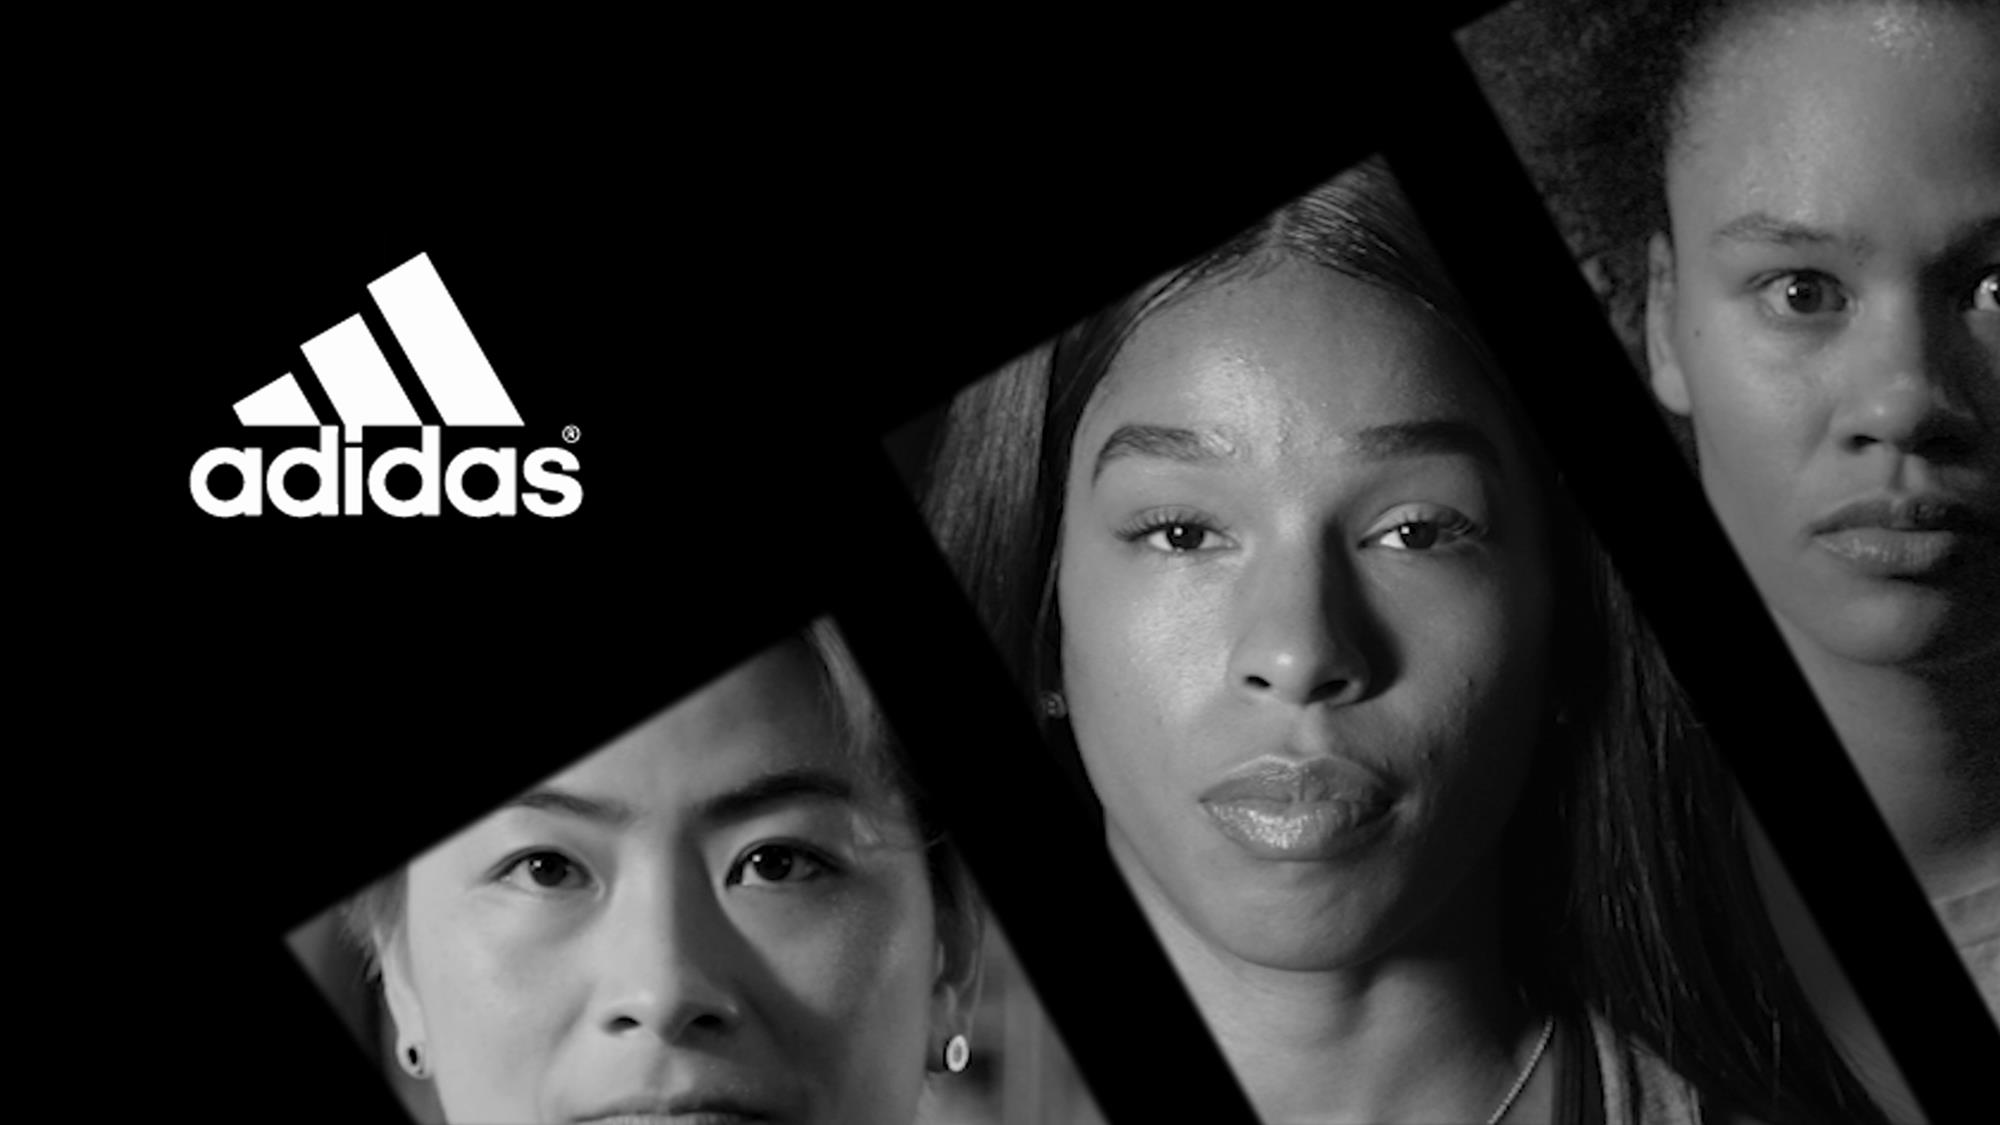 Liang S Adidas Commercial Nominated For Advertising Awards Academy Of Art University Athletics